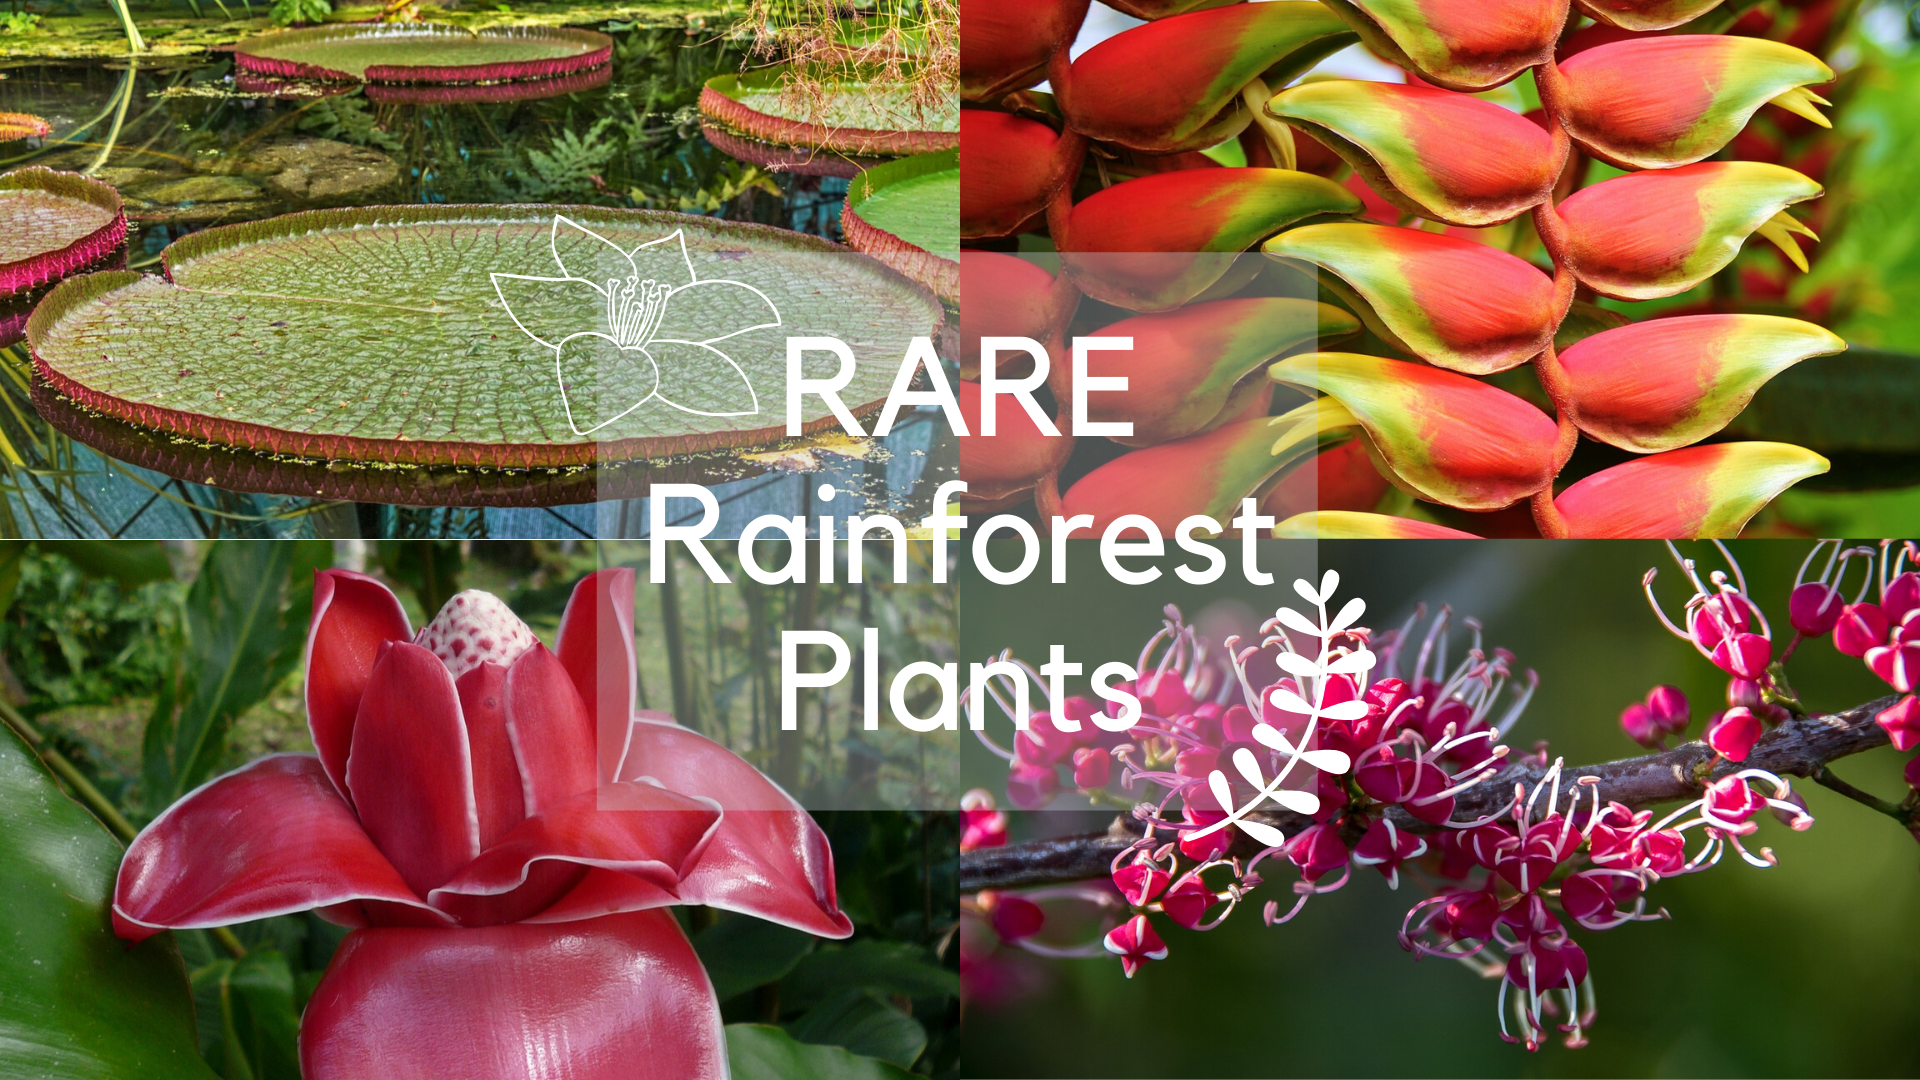 Tropical Rainforest Plants: From Rare To Common | Science Trends